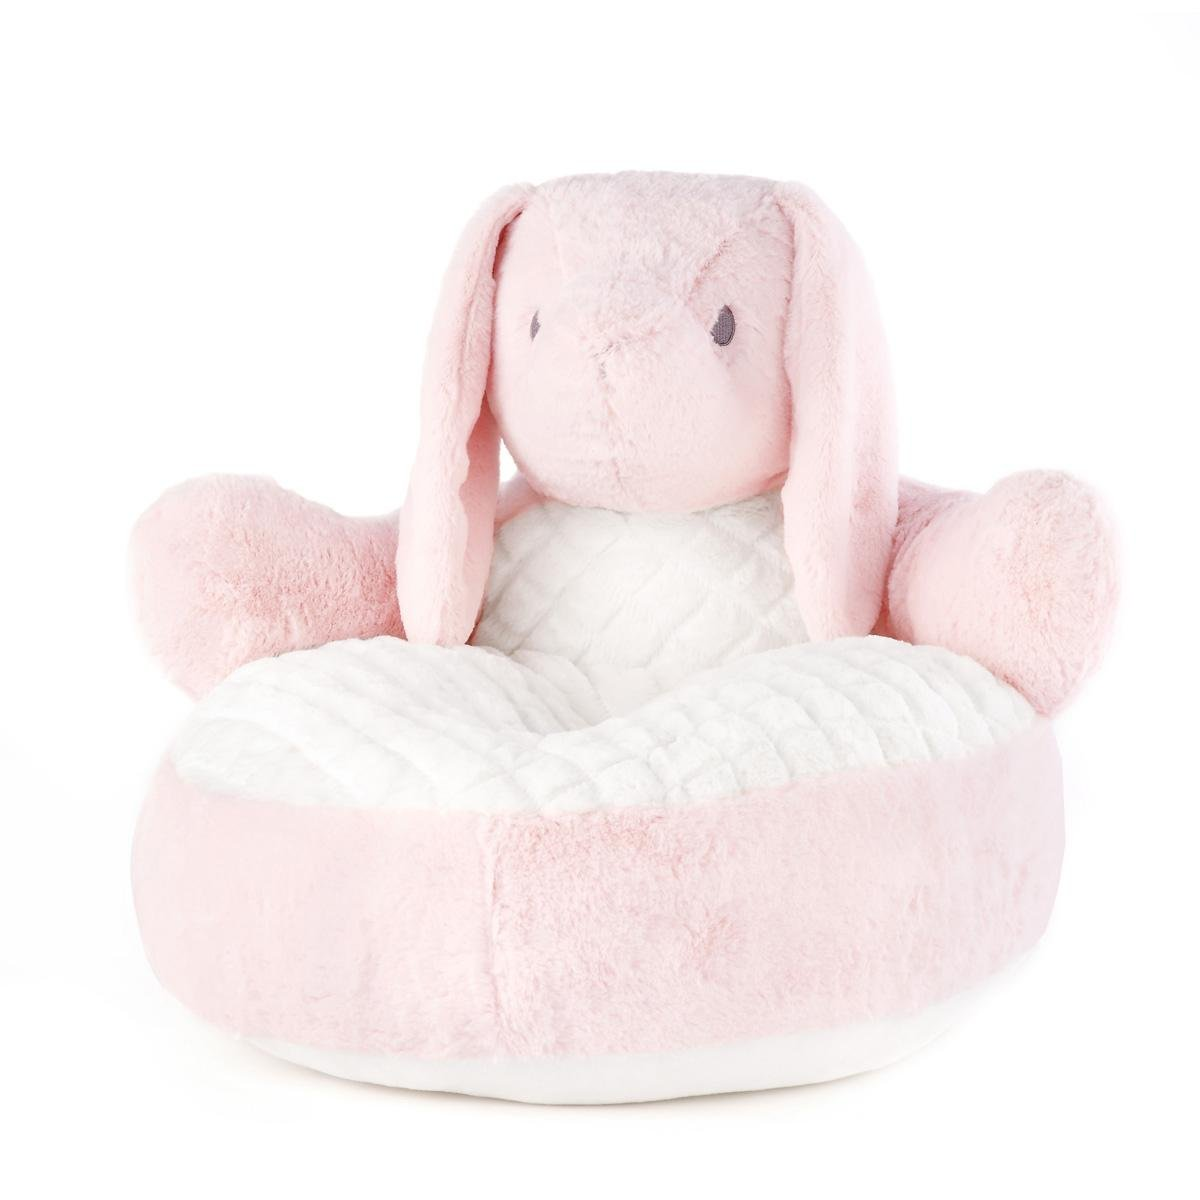 sc 1 st  Amazon.com & Amazon.com: DEMDACO Bindy Bunny Chair Pink/White: Baby